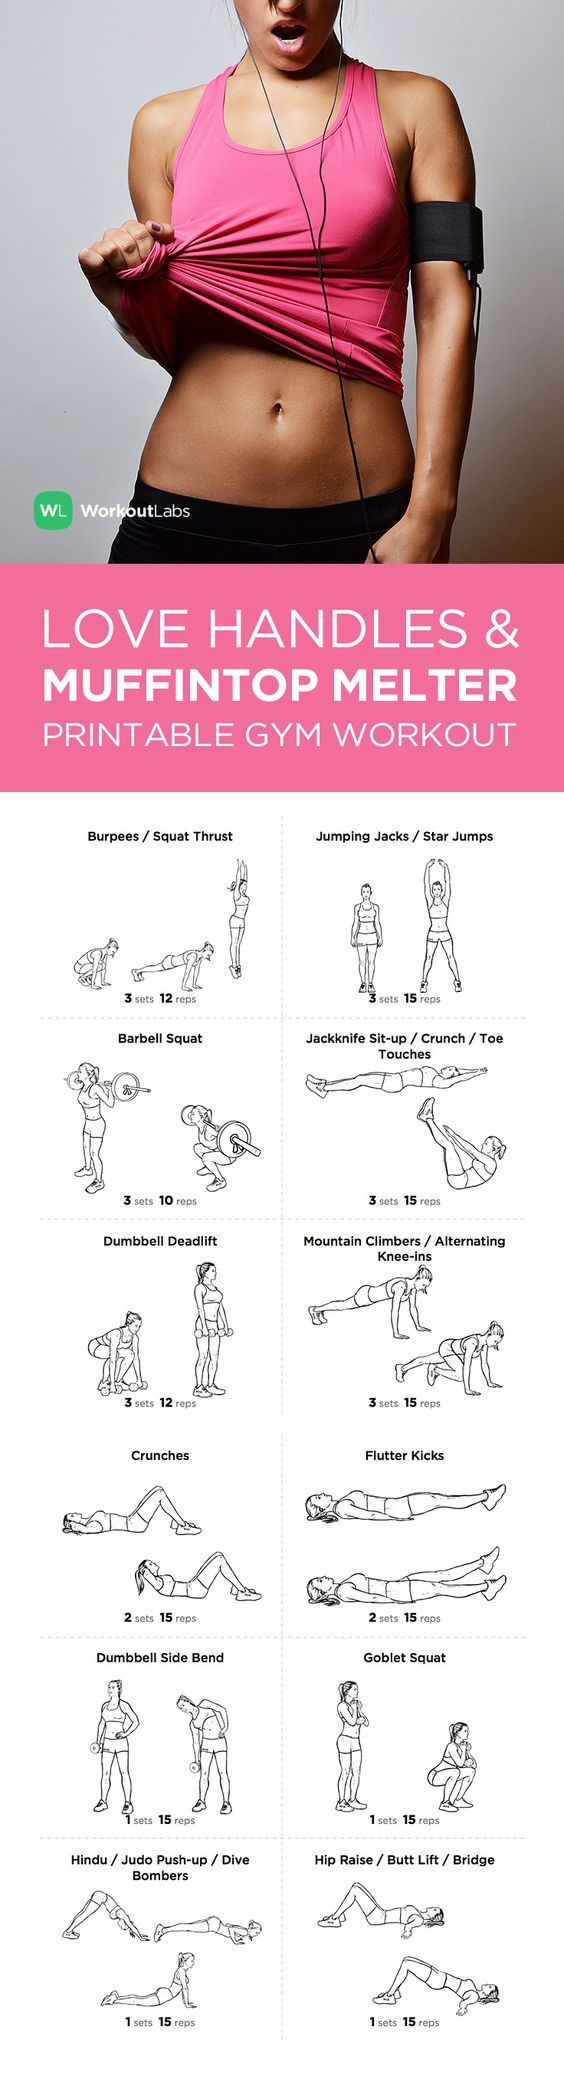 FREE PDF: Love Handles and Muffin Top Melter Printable Gym Workout for Women – visit http://wlabs.me/1sS9gnH to download!: